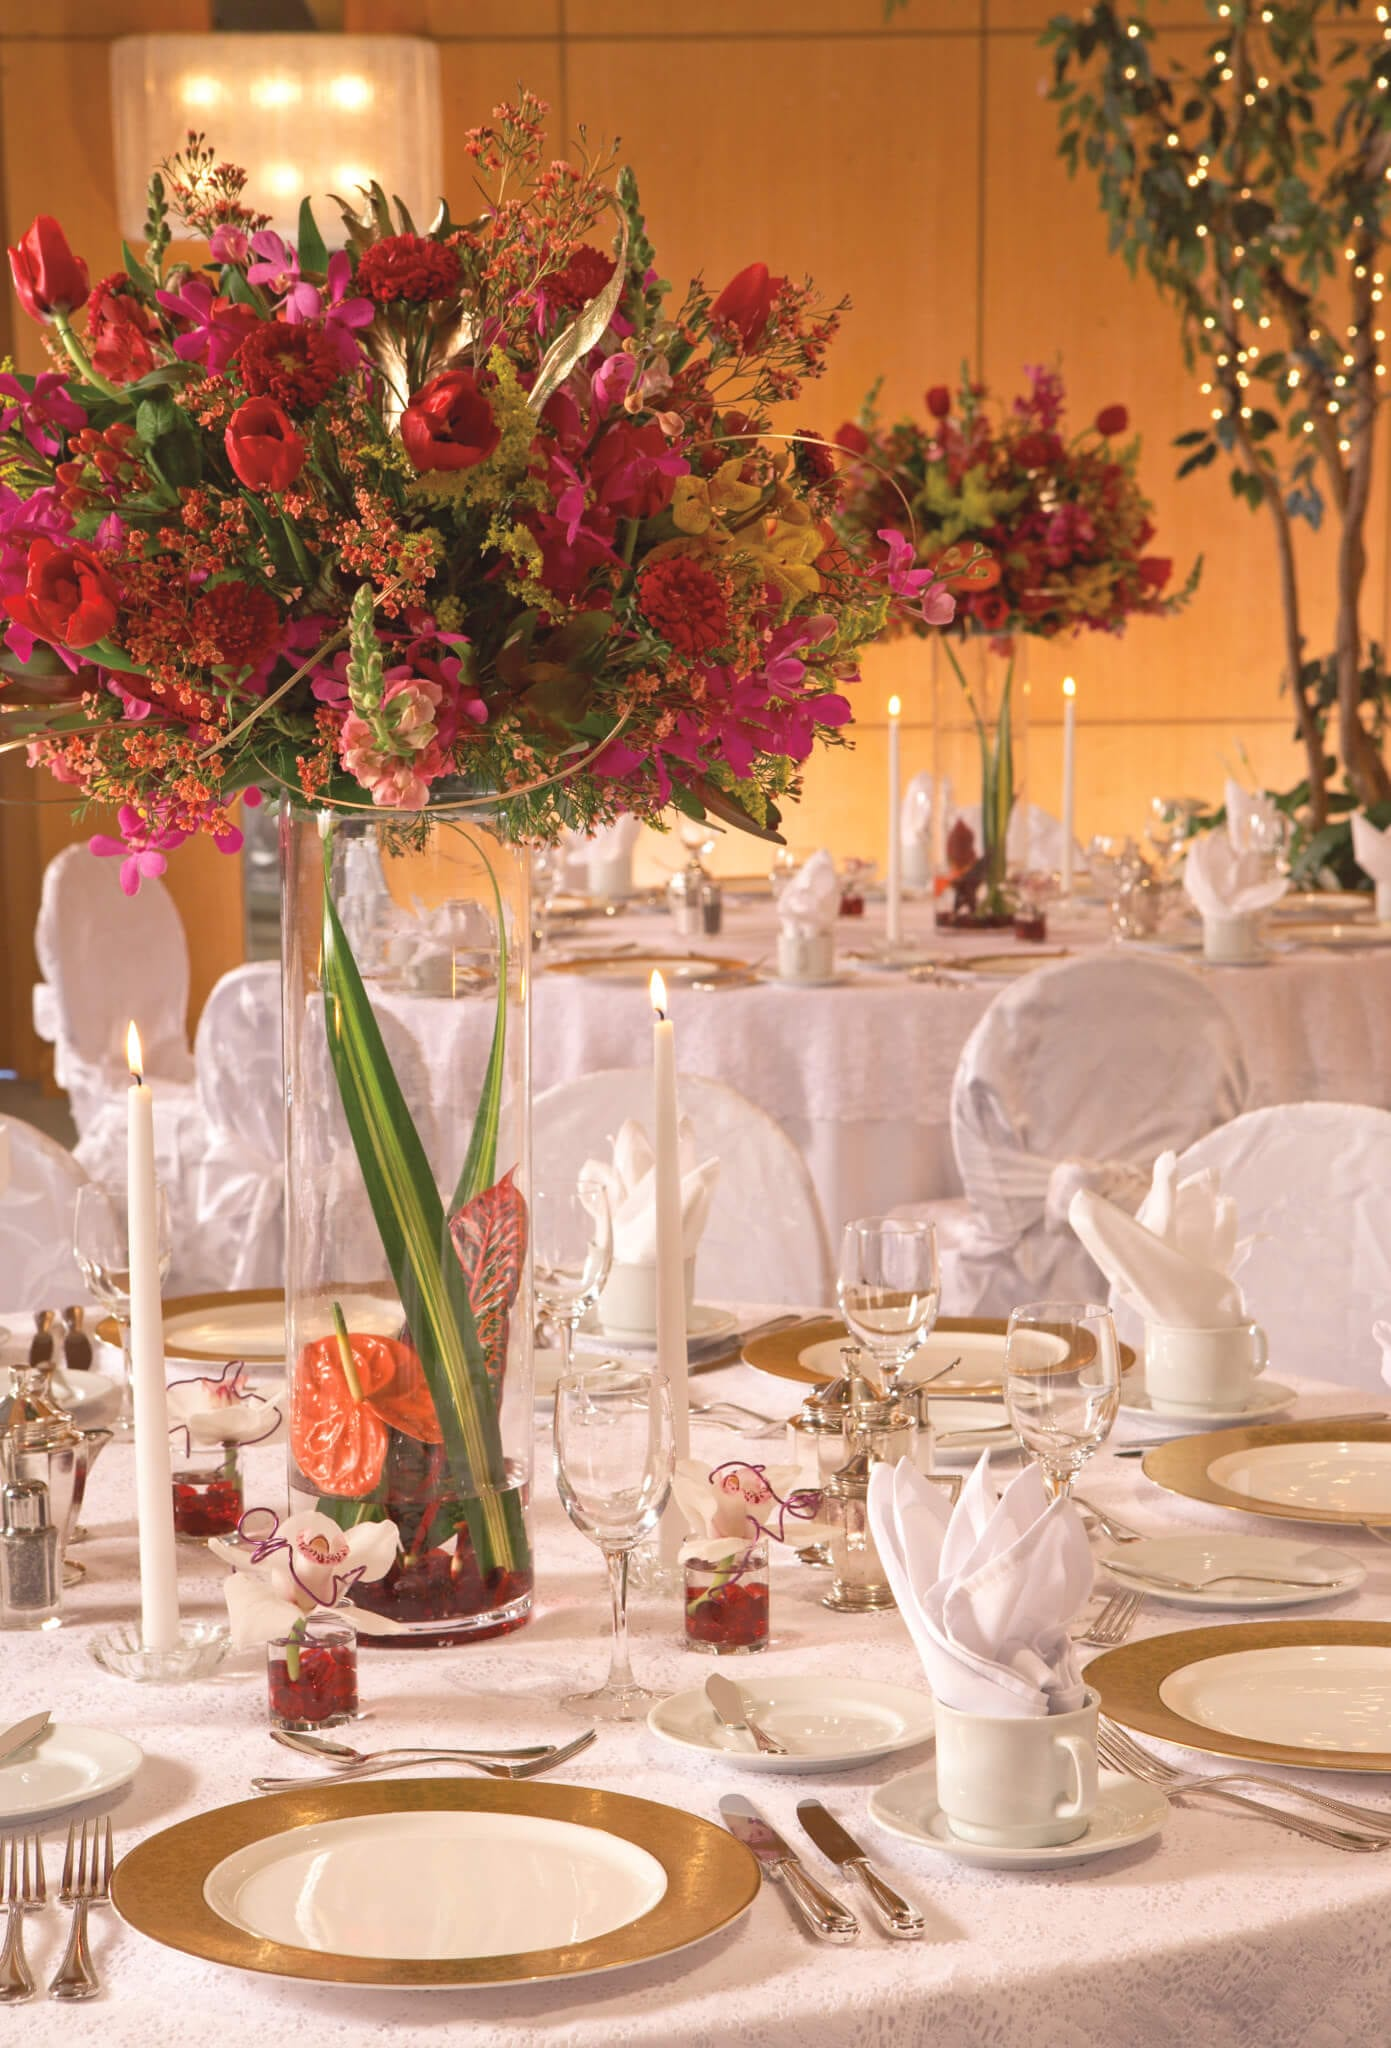 Wedding tablesetting details.